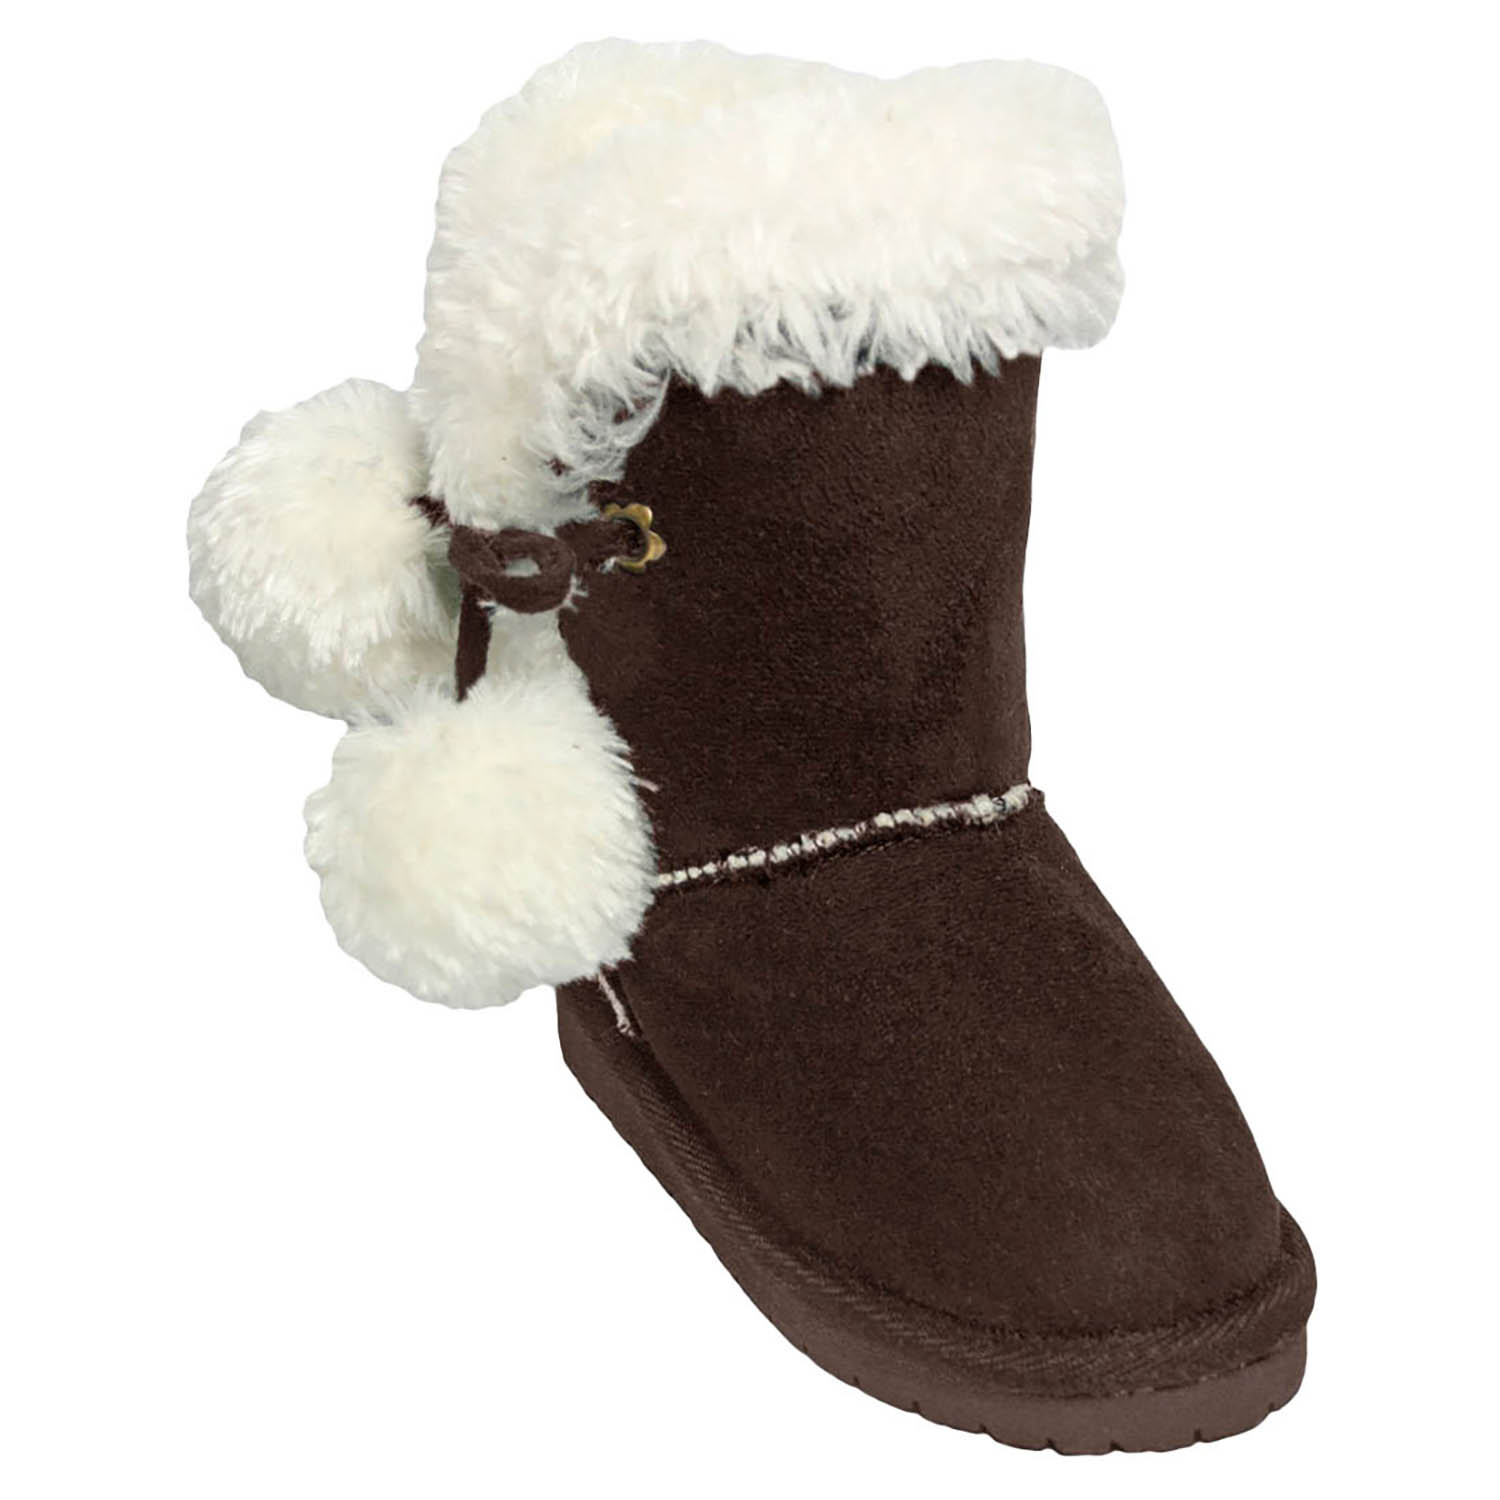 Kids' Dawgs Microfiber Side Tie Boots Chocolate Size 10-11